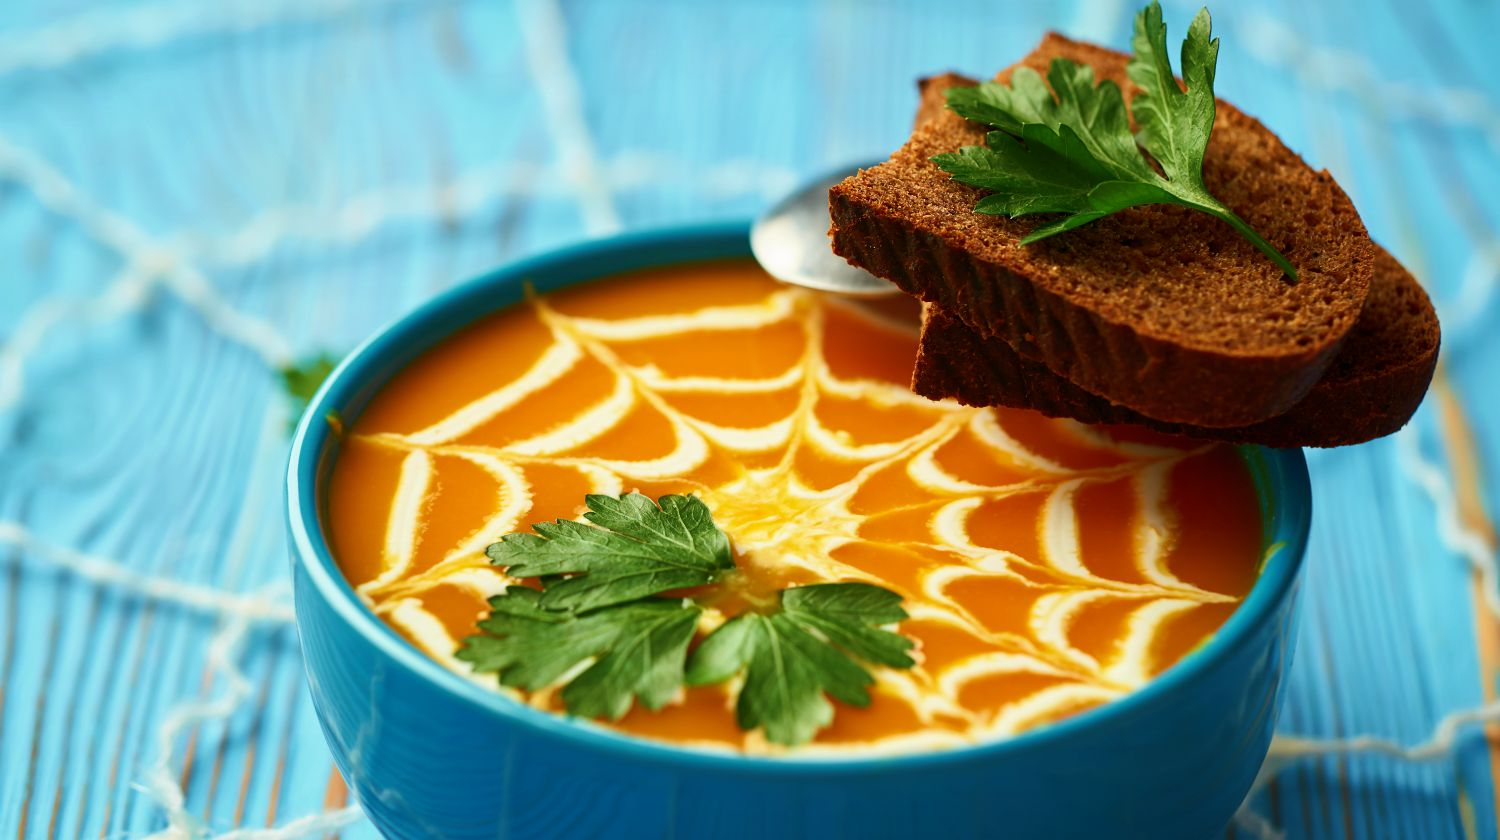 A healthy pumpkin puree garnished with cream and parsley leaves | Healthy Halloween Recipes | Easy Recipes For A Healthier Halloween | Featured